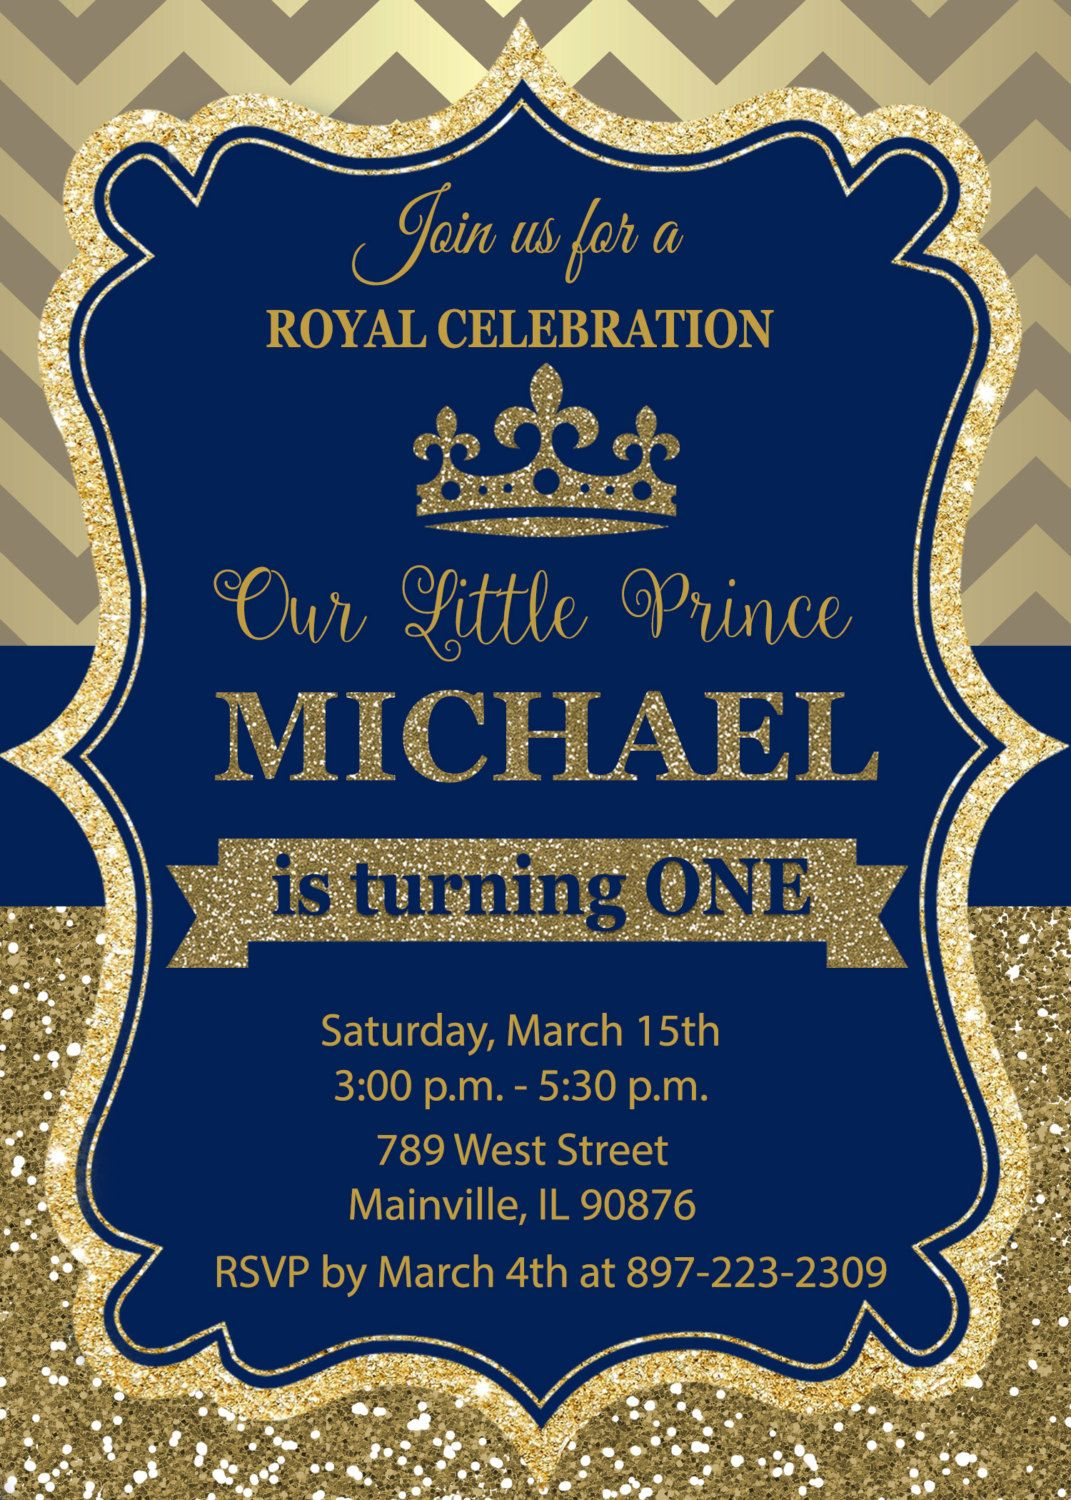 prince birthday party invitation first birthday royal. Black Bedroom Furniture Sets. Home Design Ideas